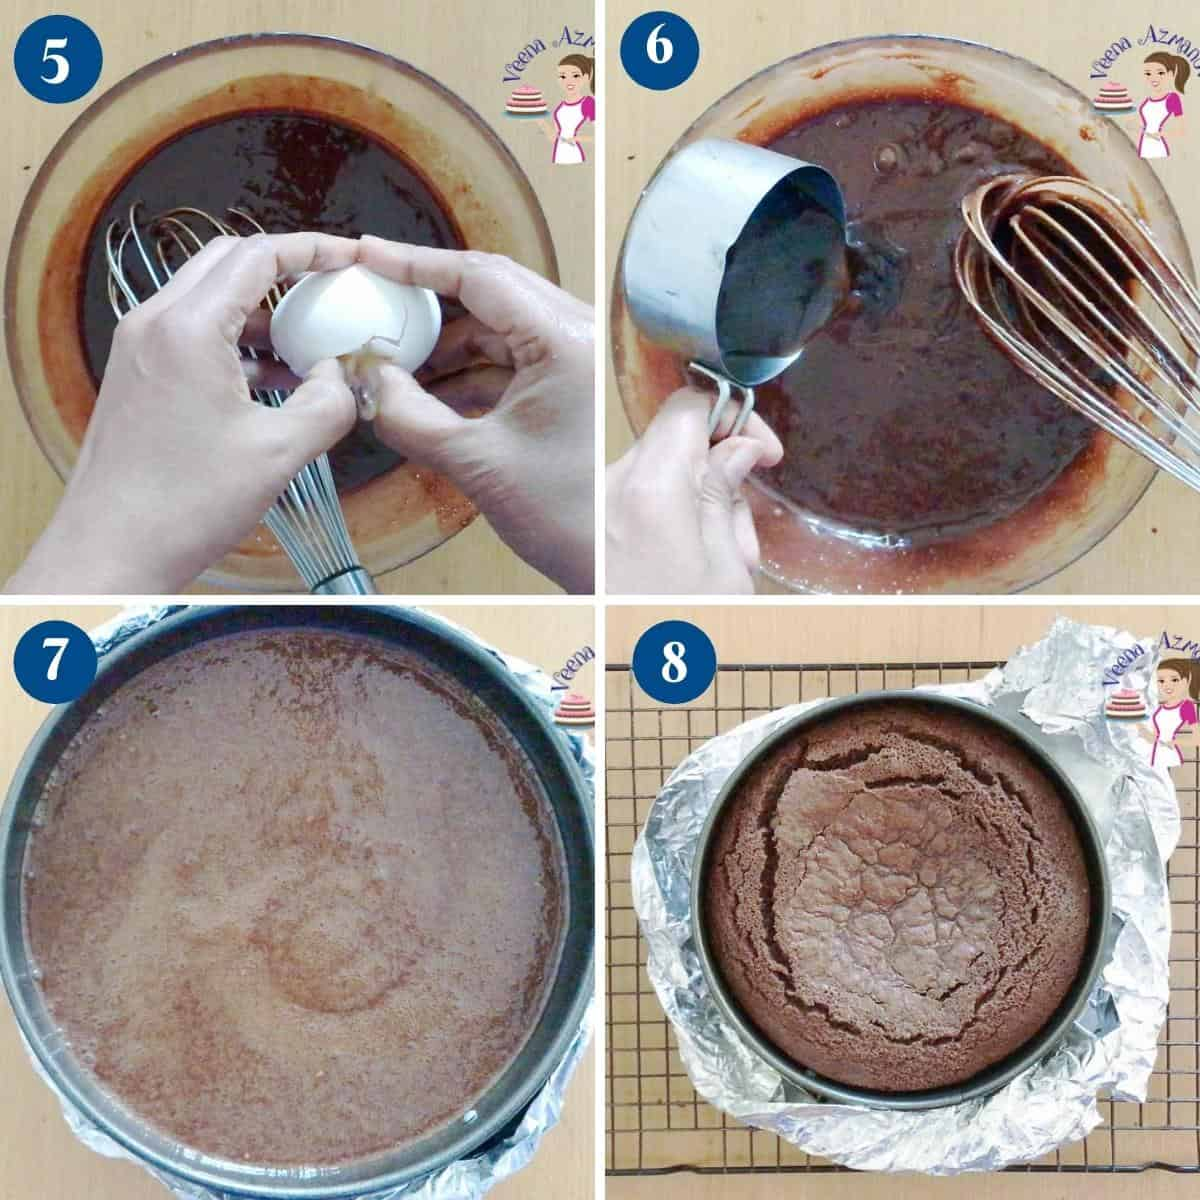 Progress pictures collage for gluten-free chocolate cake.